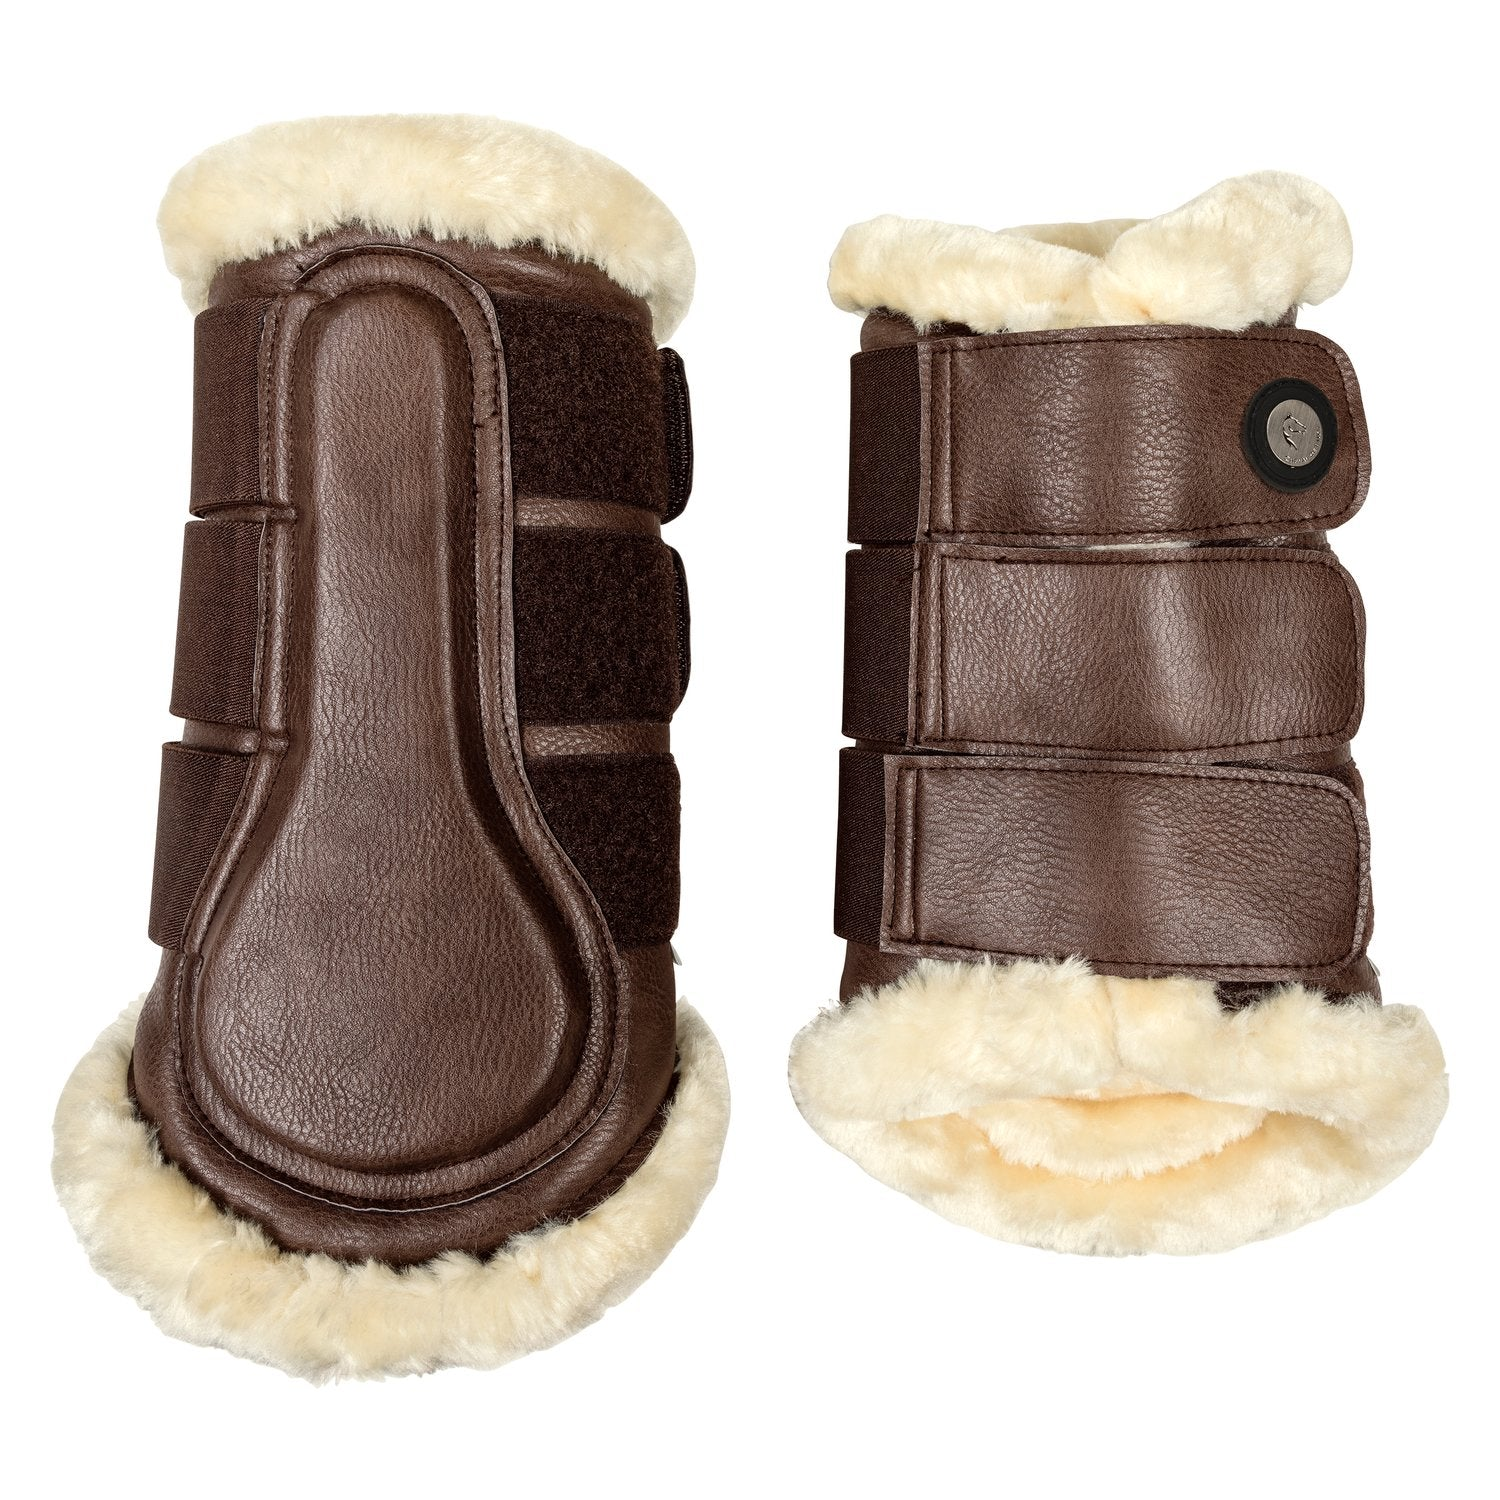 Cheval de Luxe Brown Tendon Boots